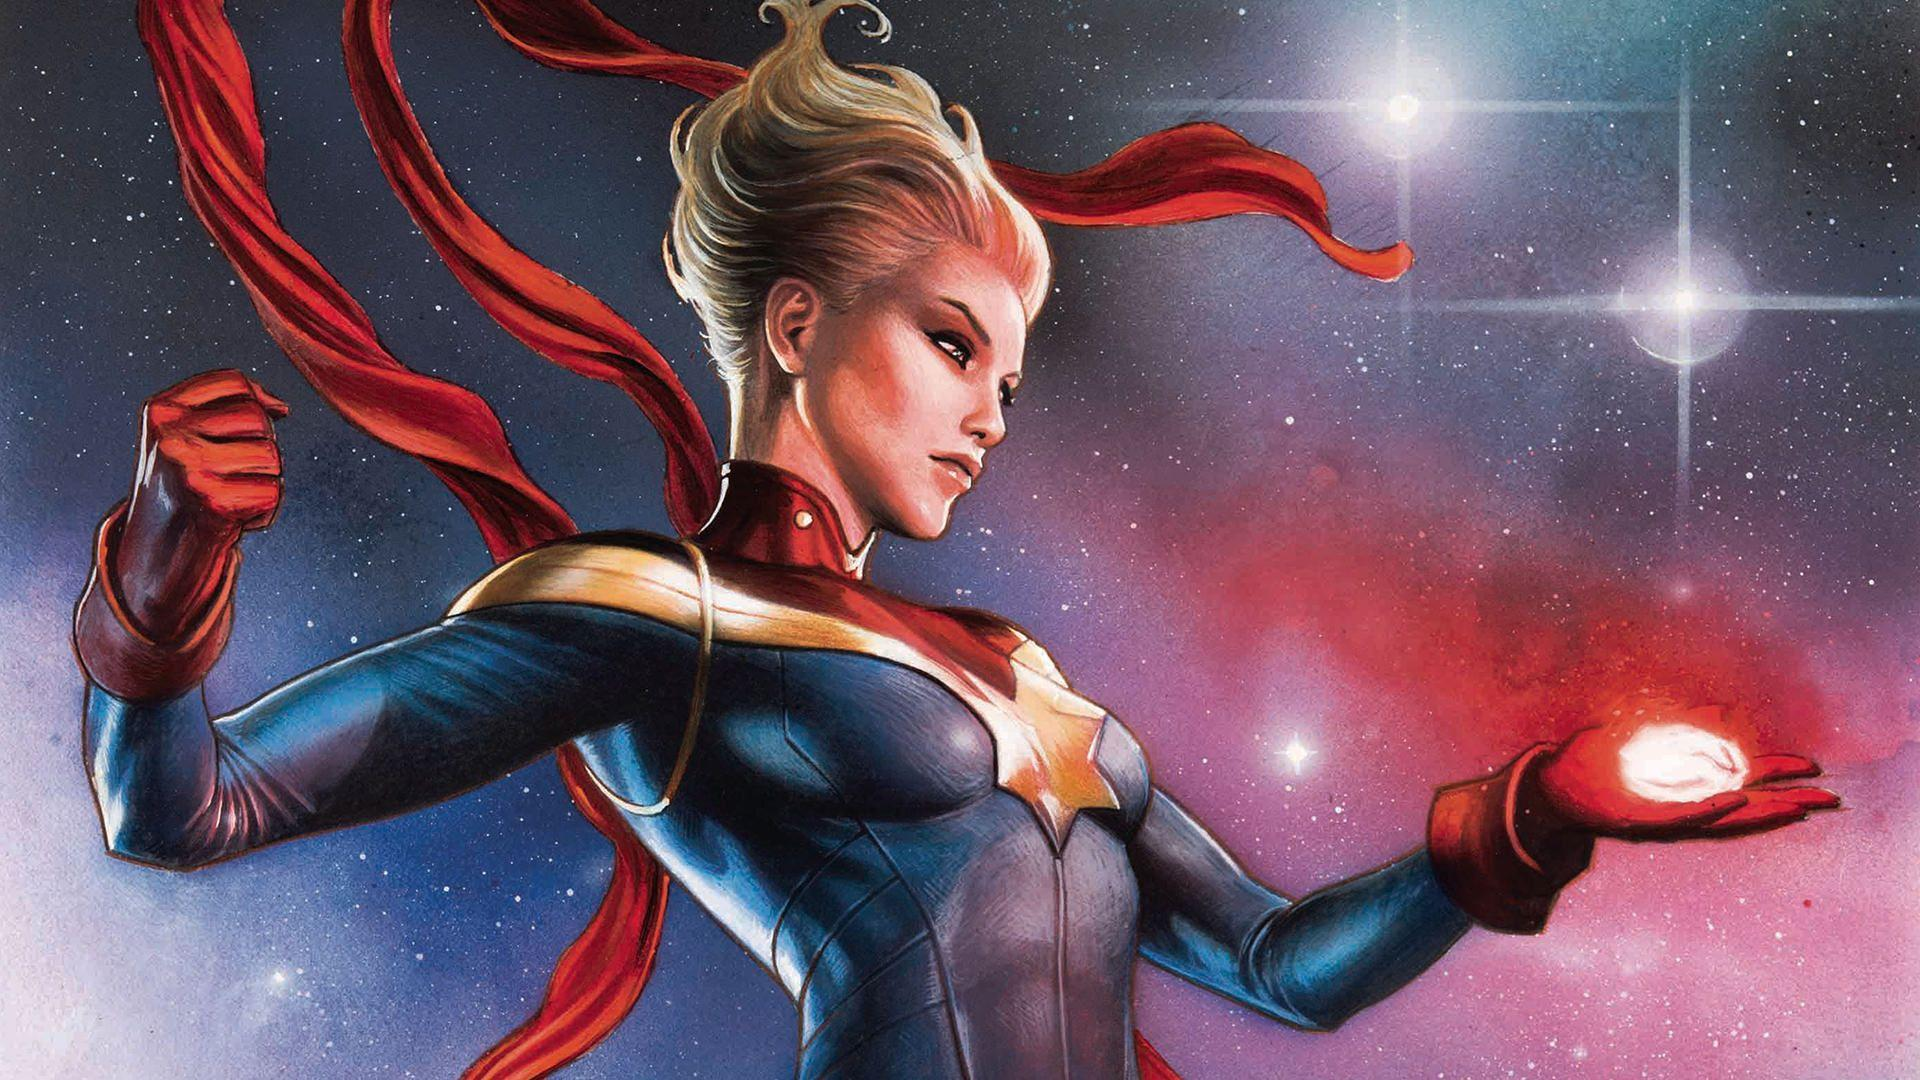 Captain Marvel Wallpapers - Wallpaper Cave